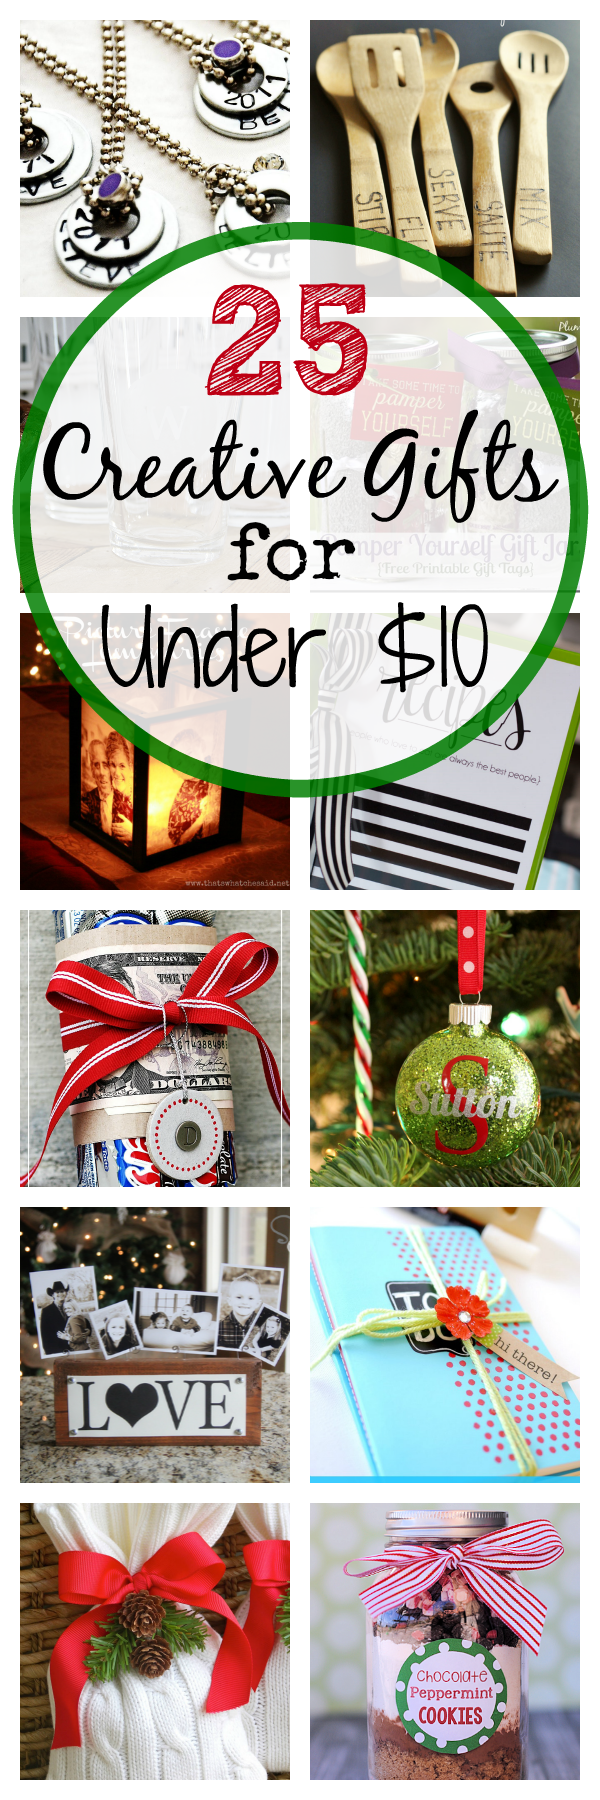 Great ideas for christmas gifts for co-workers